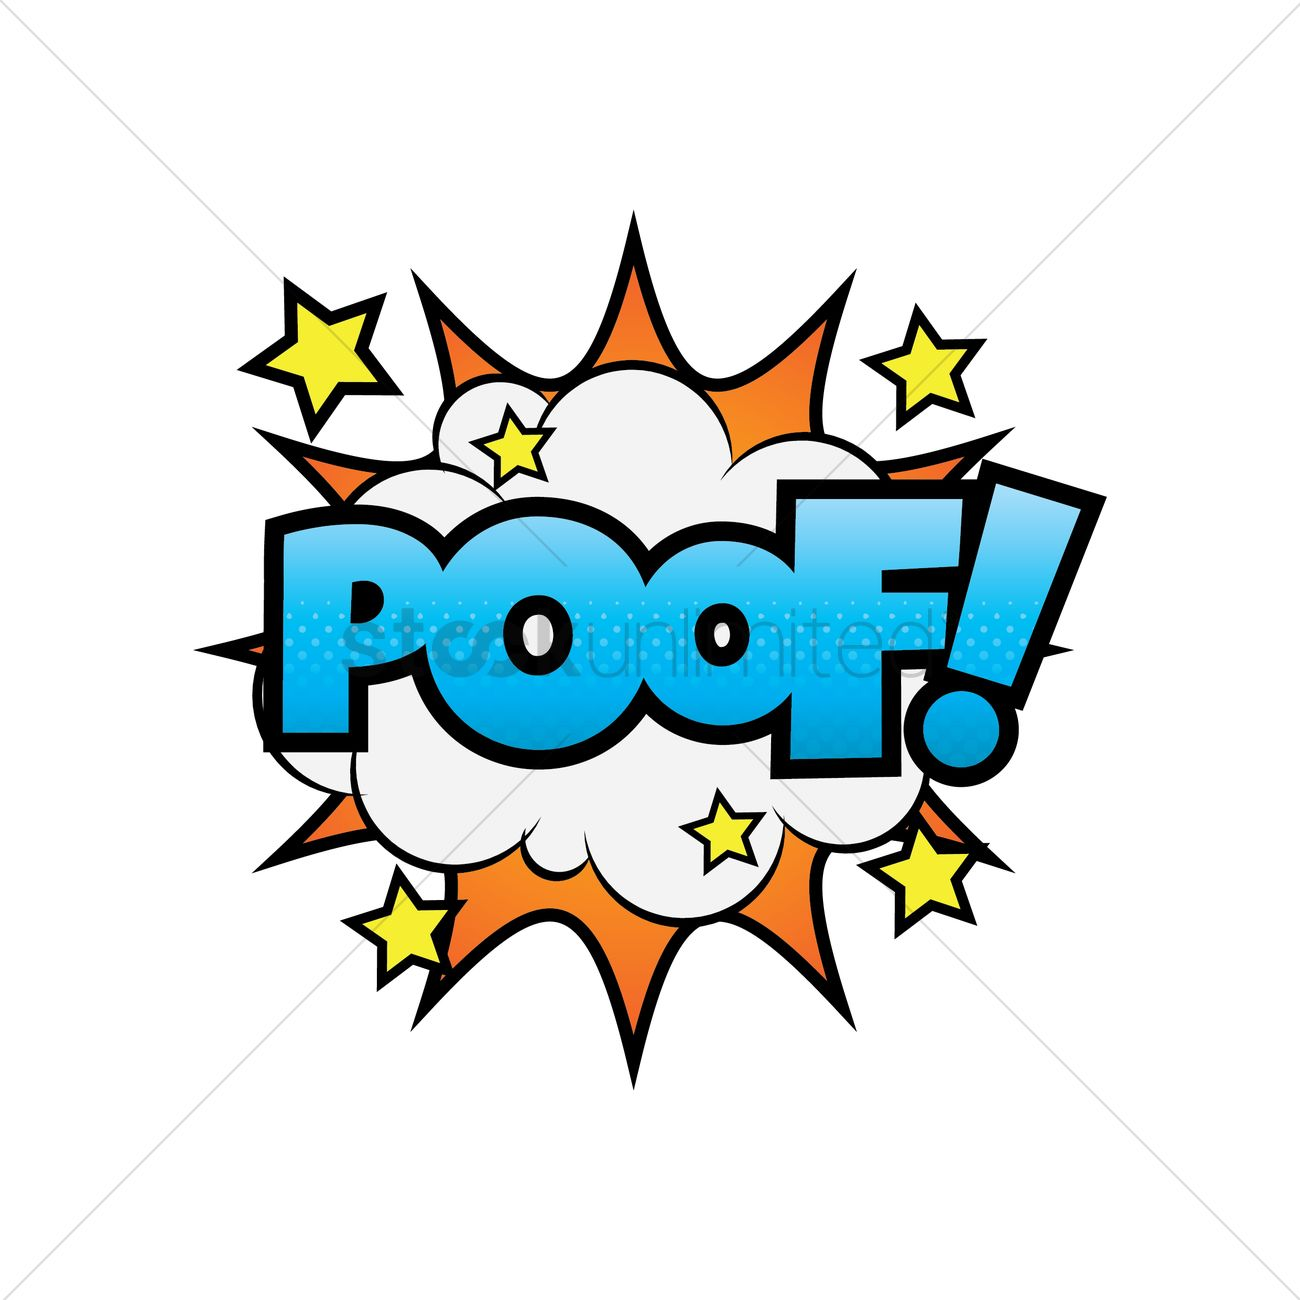 Poof clipart #5, Download drawings